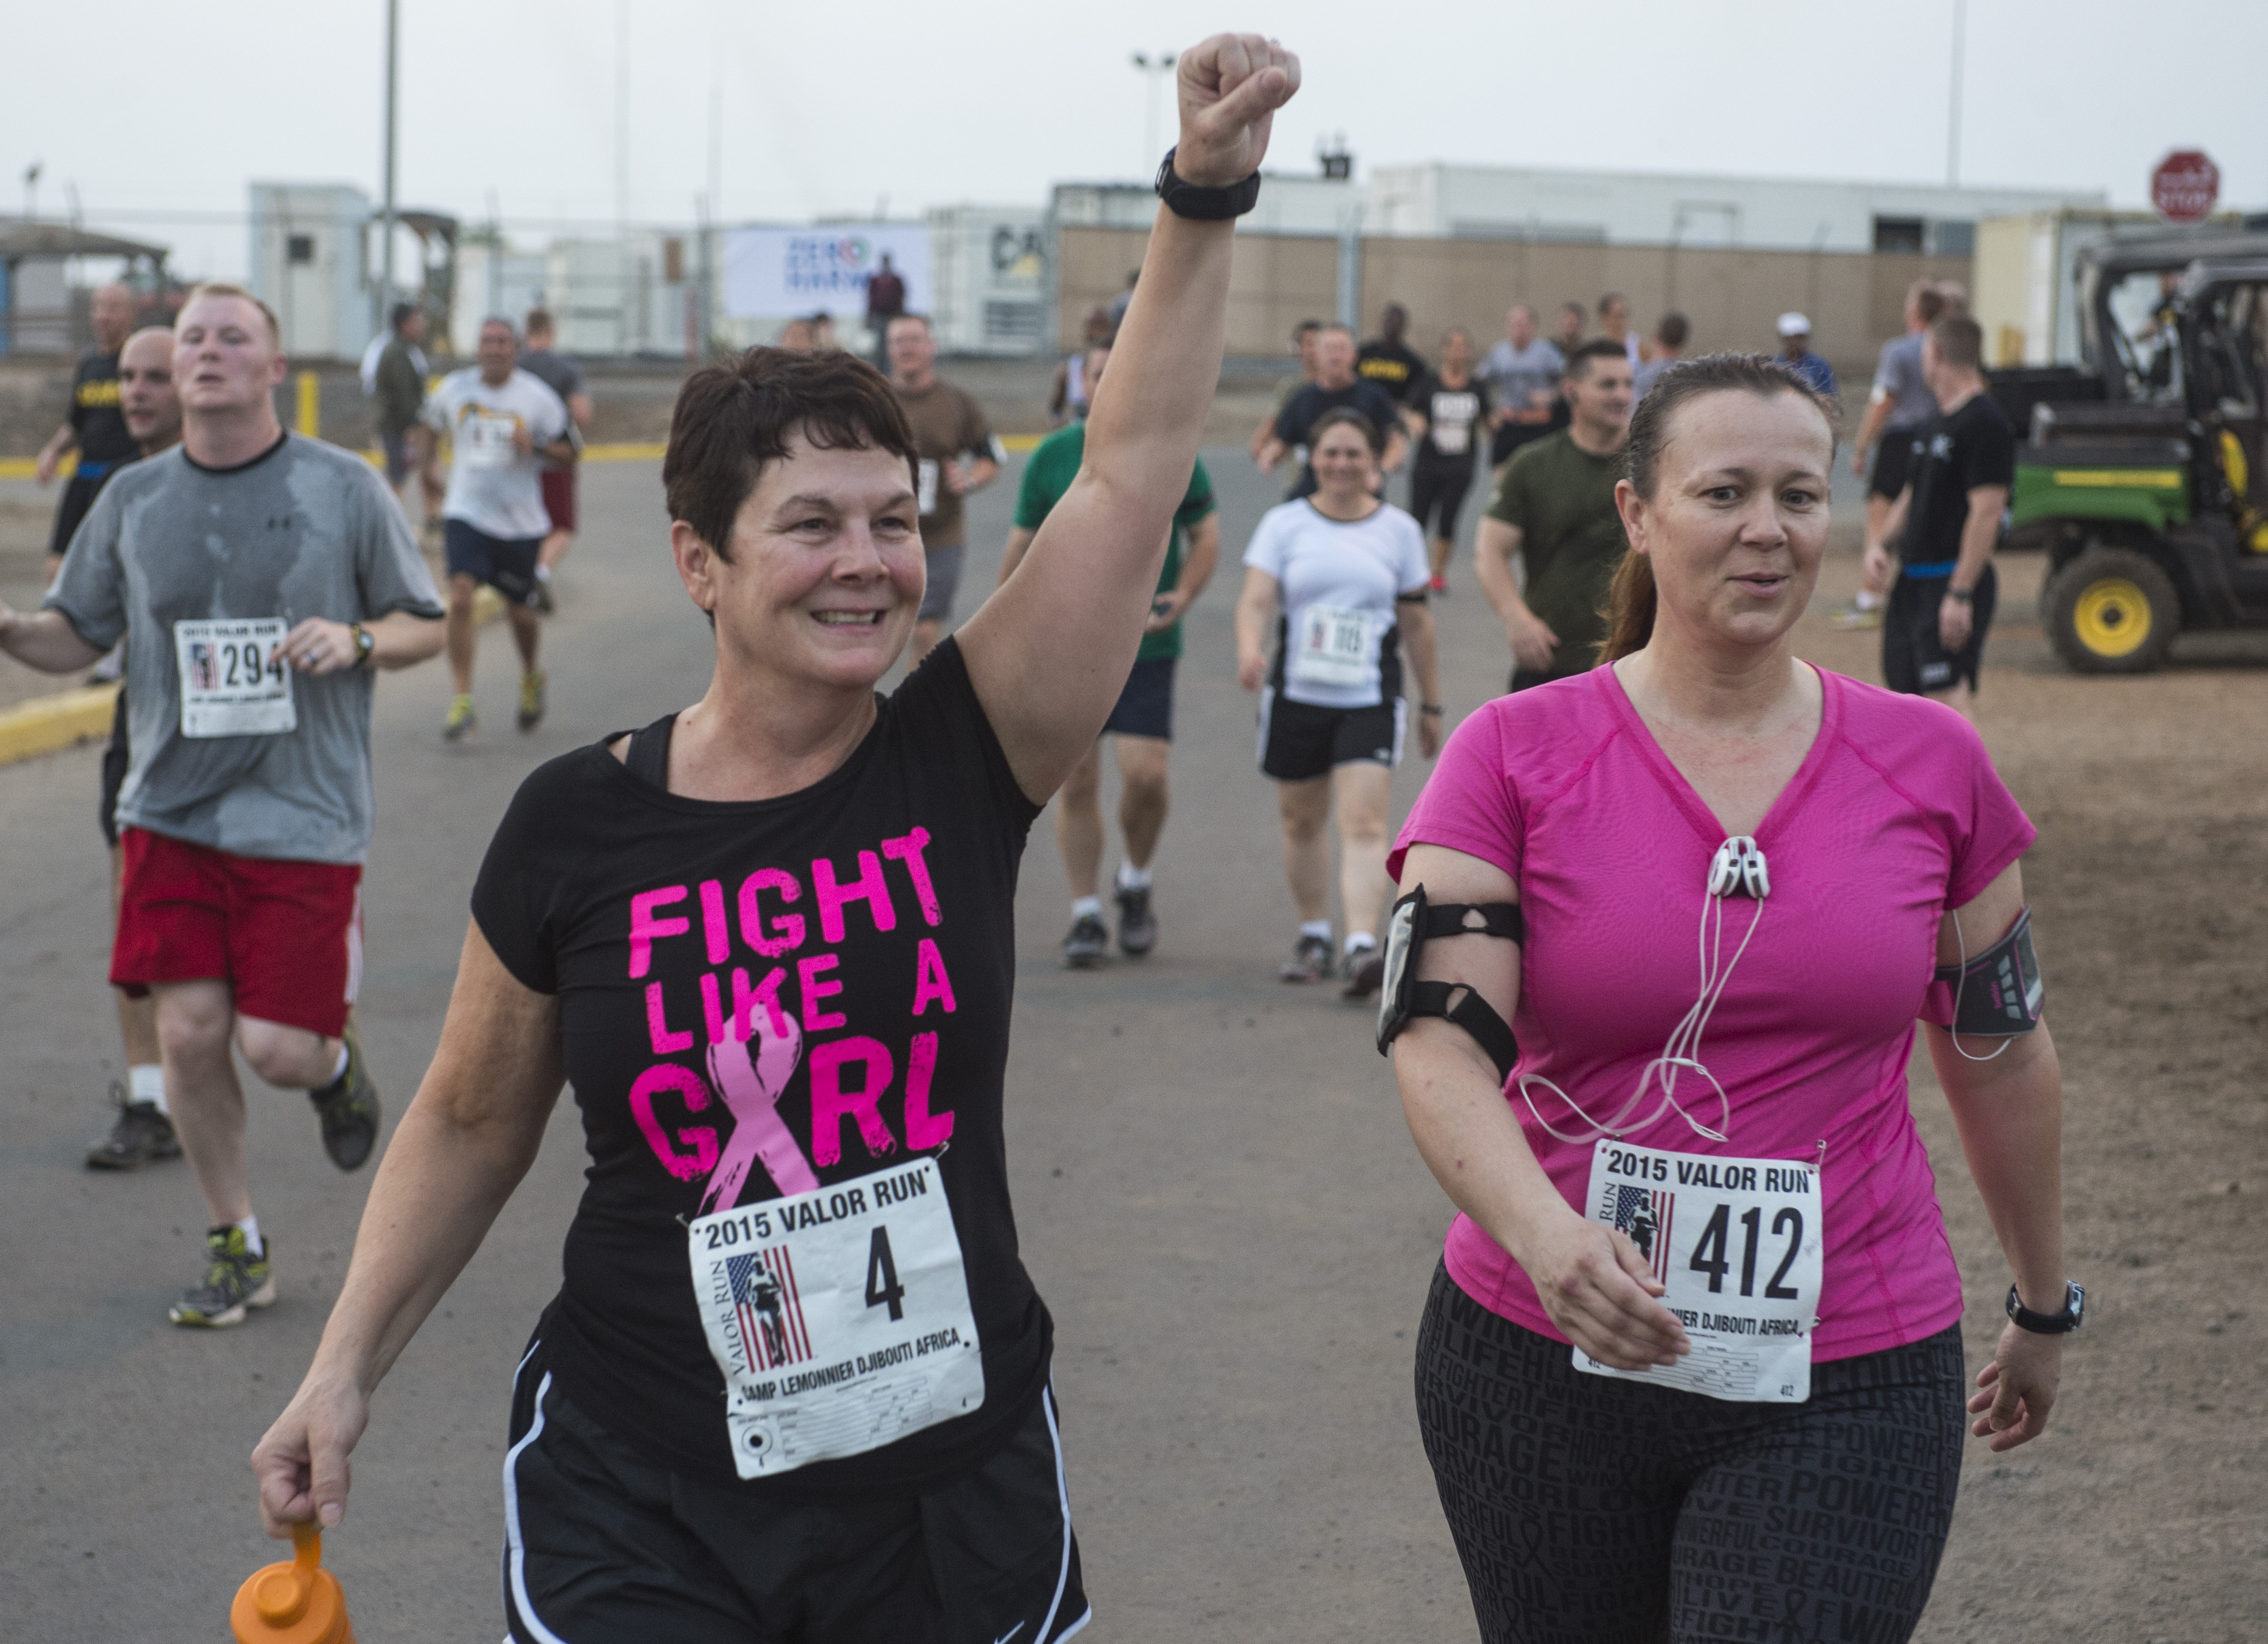 U.S. Navy Capt. Claire Bedford, Combined Joint Task Force-Horn of Africa director of personnel (left), and Air Force Lt. Col. Lynn Plunckett, CJTF-HOA Knowledge Management Operations director (right), celebrate as they cross the finish line Oct. 21, 2015, at Camp Lemonnier, Djibouti. More than 800 runners and walkers participated in a Valor Run hosted by Combined Joint Task Force-Horn of Africa and Camp Lemonnier, dedicated to fallen service women.(U.S. Air Force photo by Senior Airman Peter Thompson/Released)